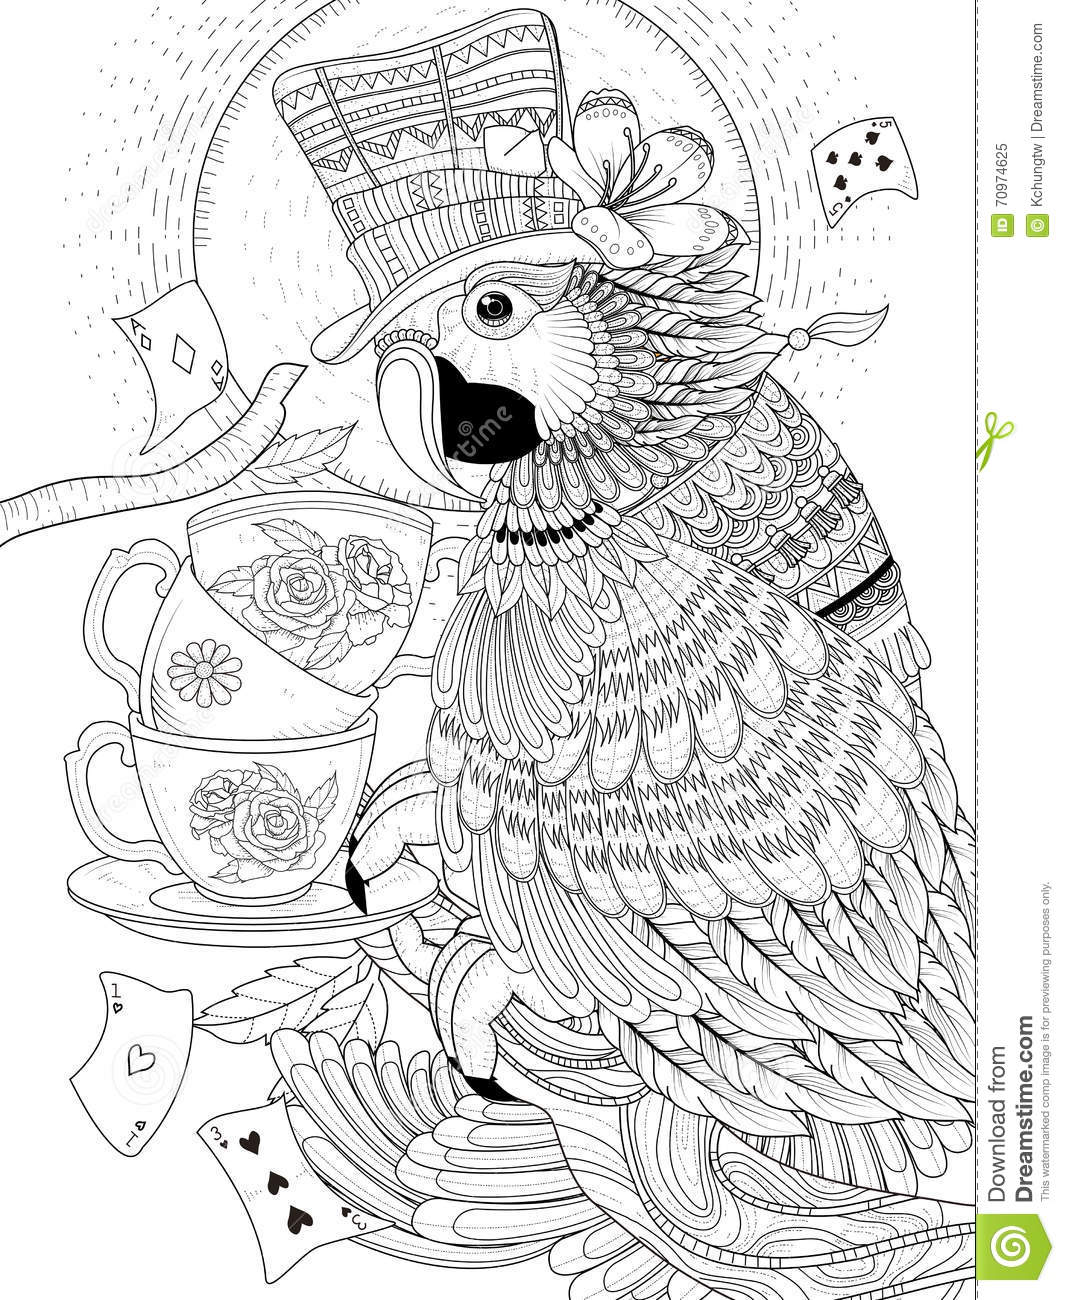 magician parrot coloring page stock illustration image